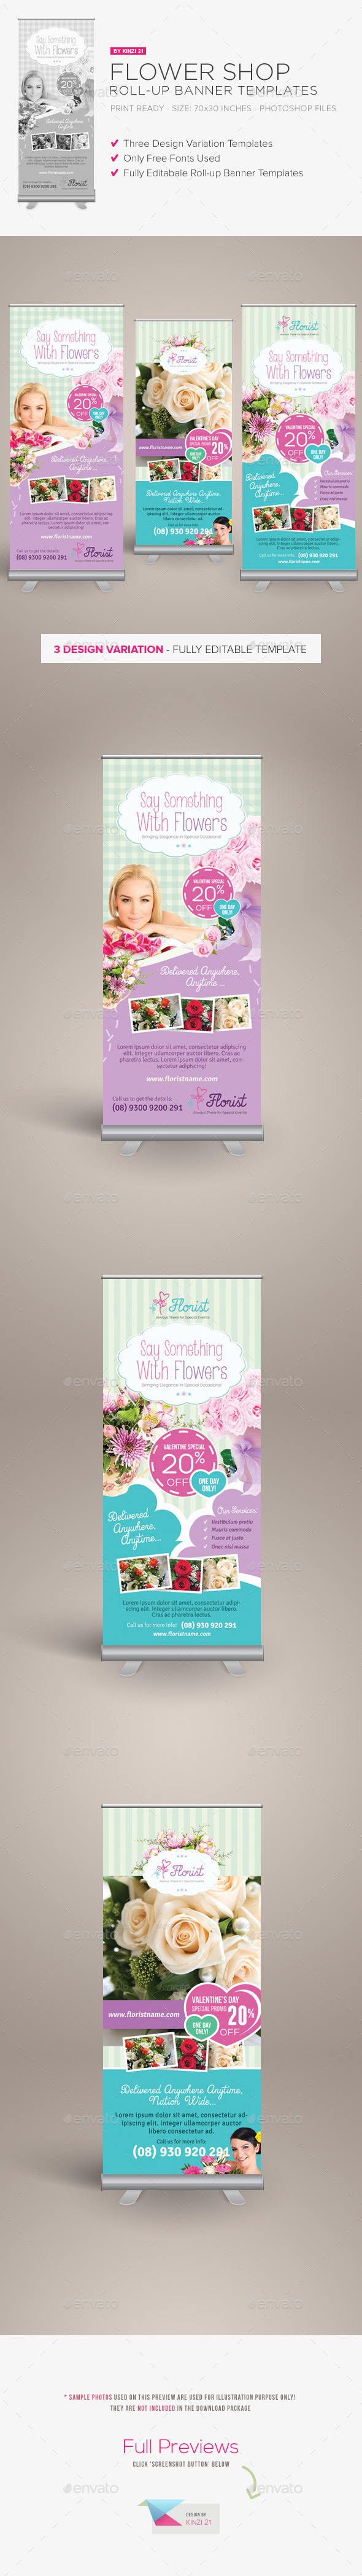 GraphicRiver Flower Shop Roll-up Banners 9997670